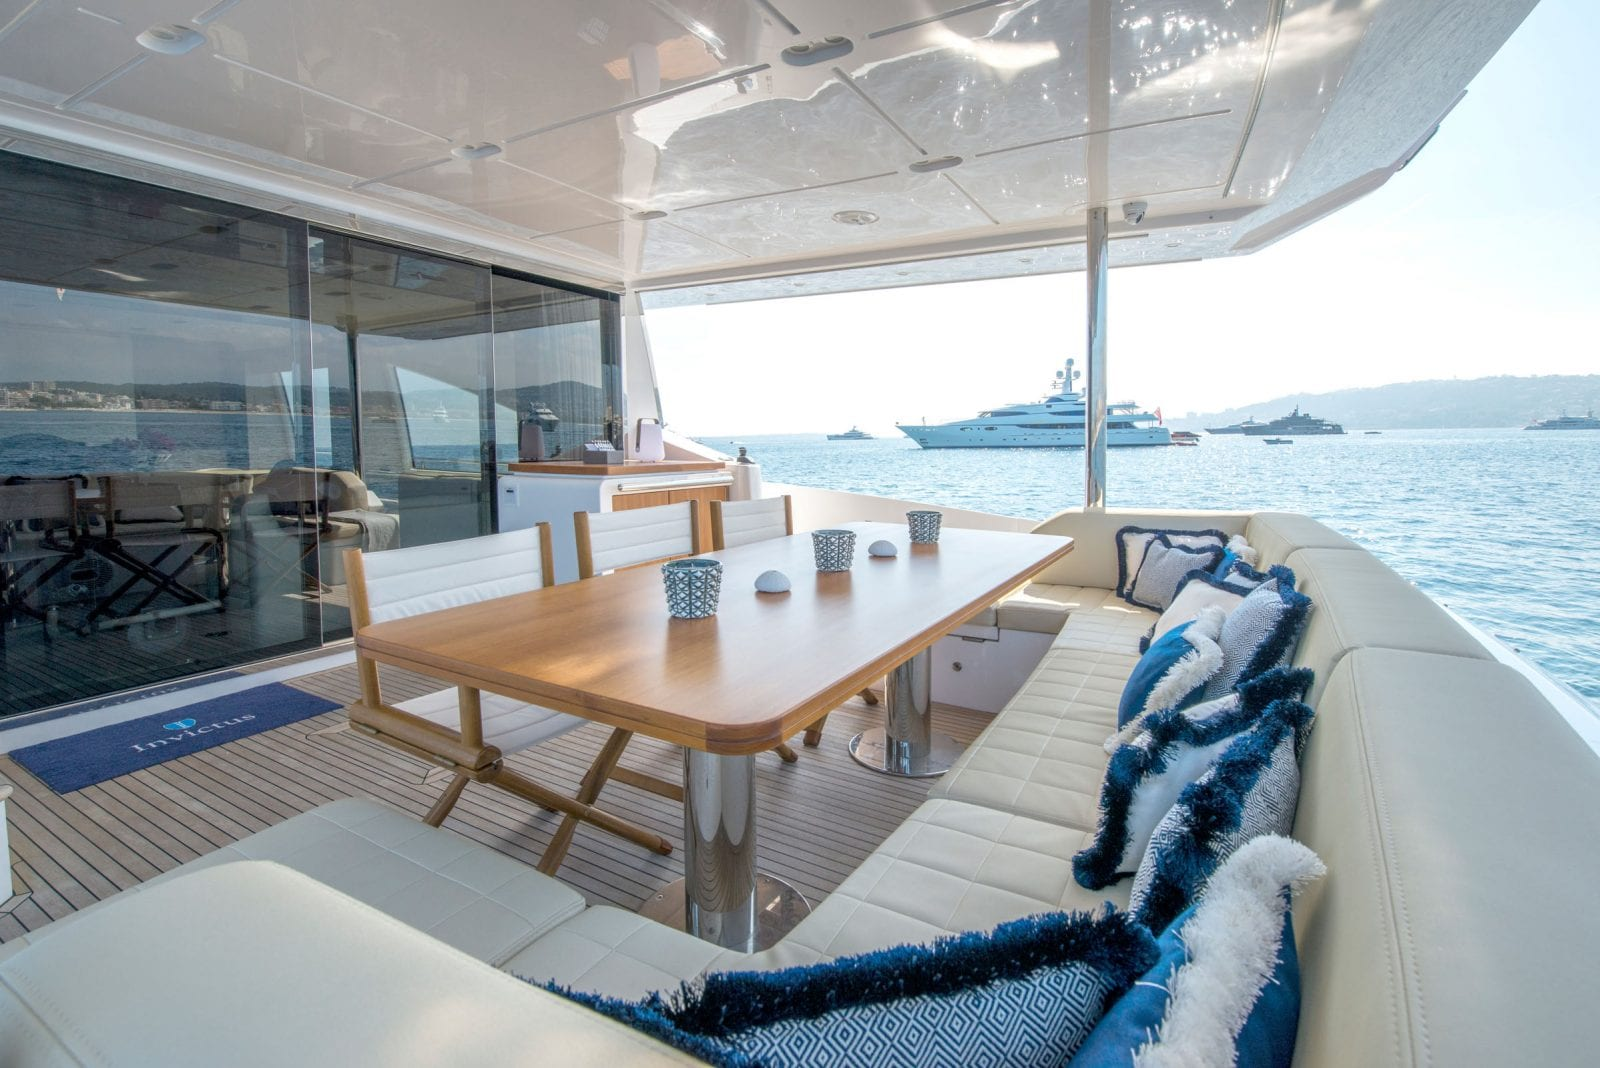 table setup with seating on back side of yacht